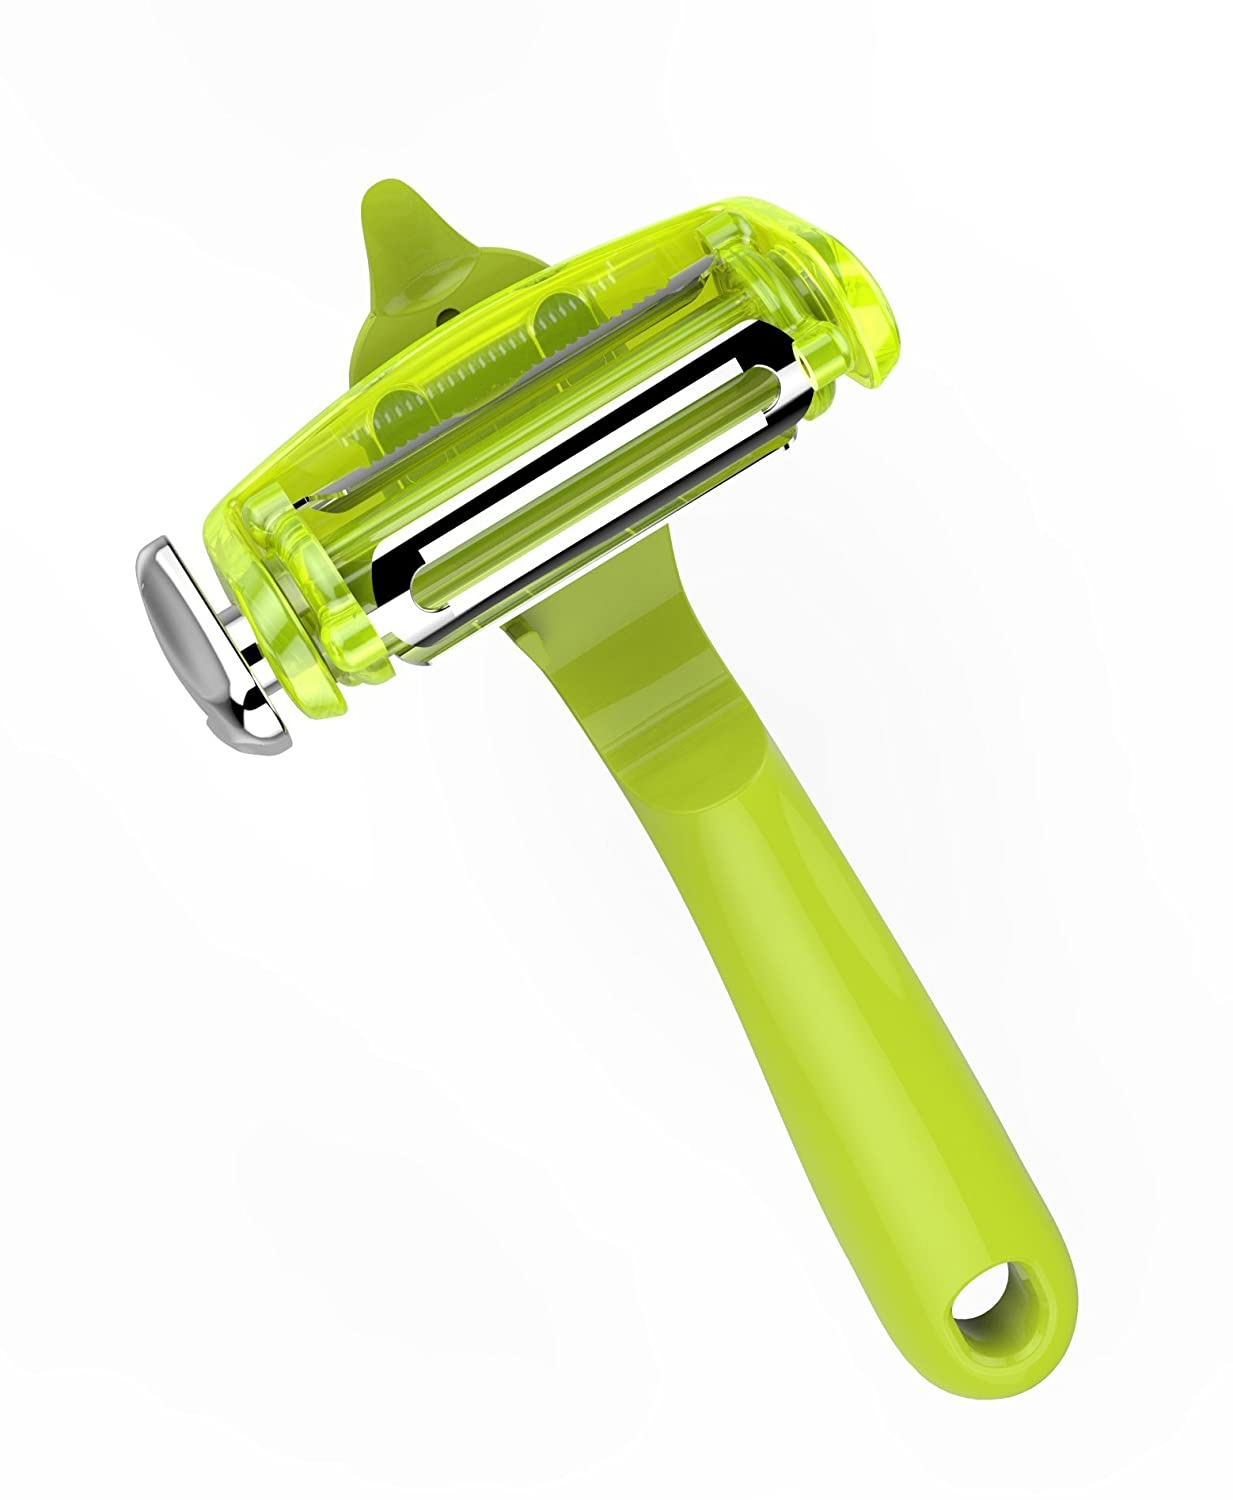 Citrus Fruit Peeler for Orange Lemon Cocktails Carrot and Potato Peeler with Rotating Serrated Straight and Julienne Stainless Steel Slicer Blades TYH Supplies 3 in 1 Julienne Vegetable Peeler